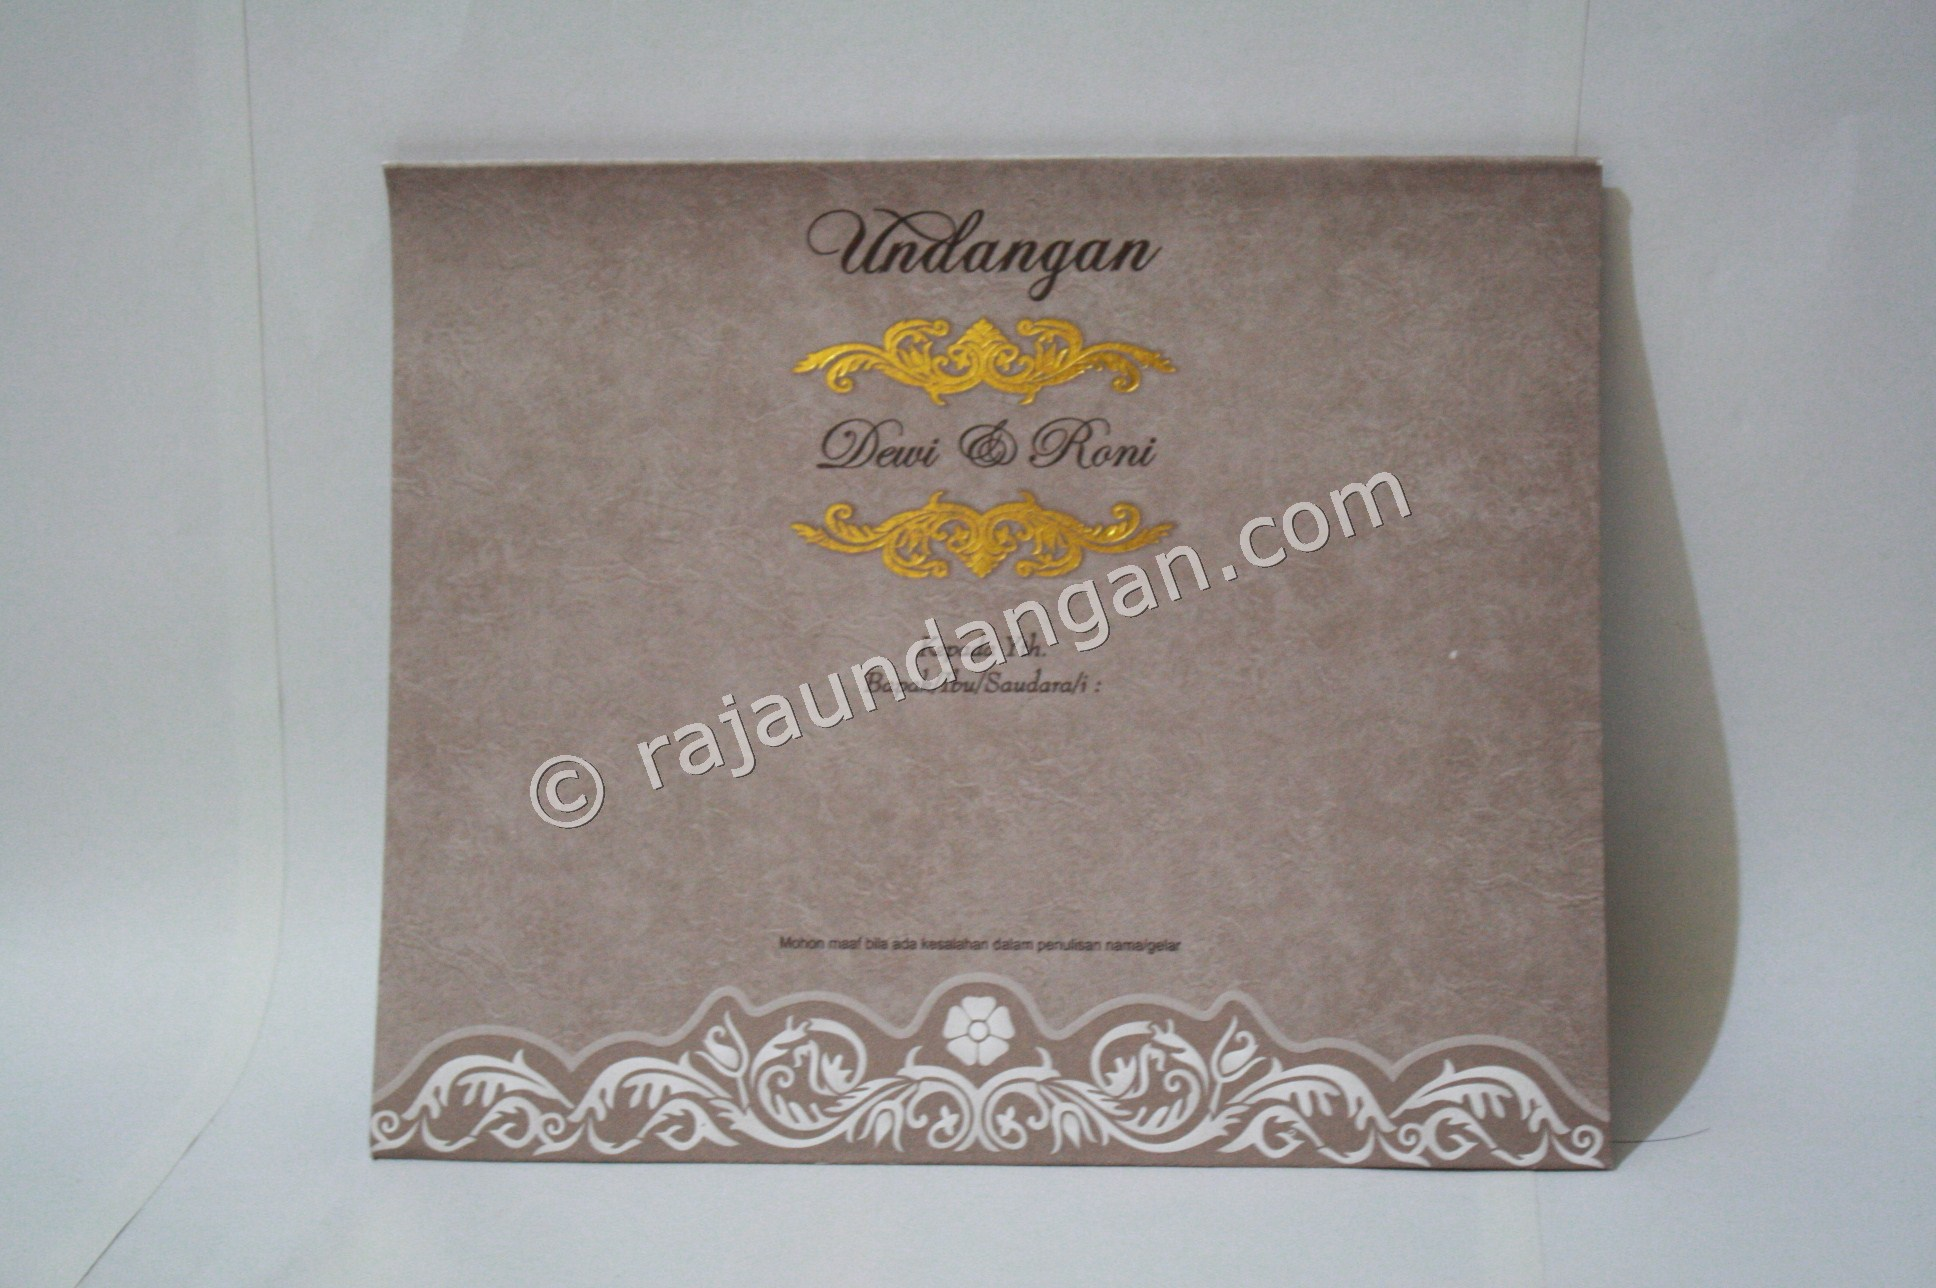 undangan pernikahan softcover ED 28 1 - Percetakan Wedding Invitations Murah di Kapasan